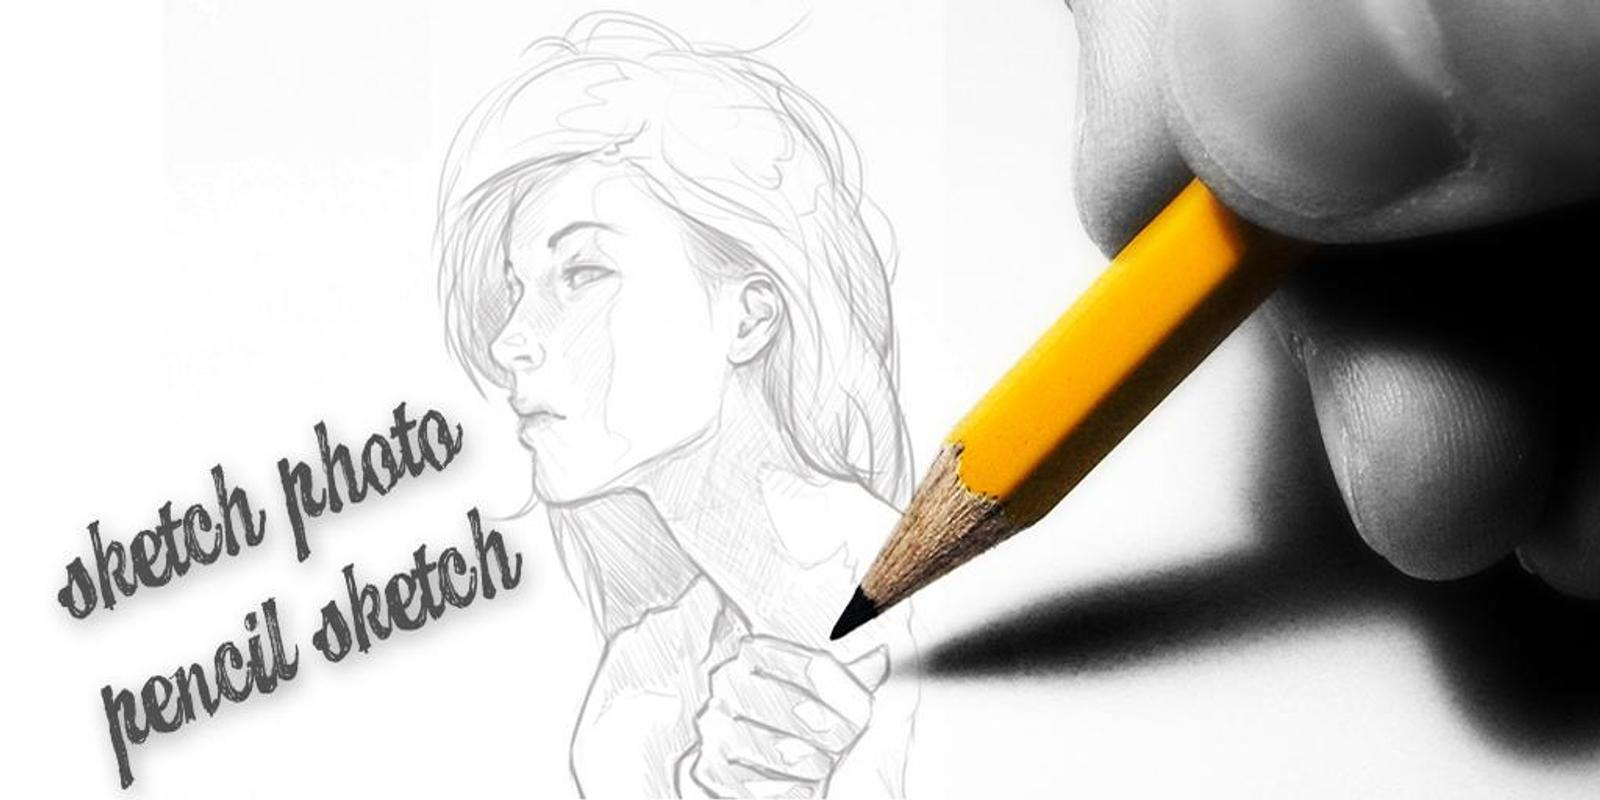 Sketch photo editor pencil sketch photo maker poster